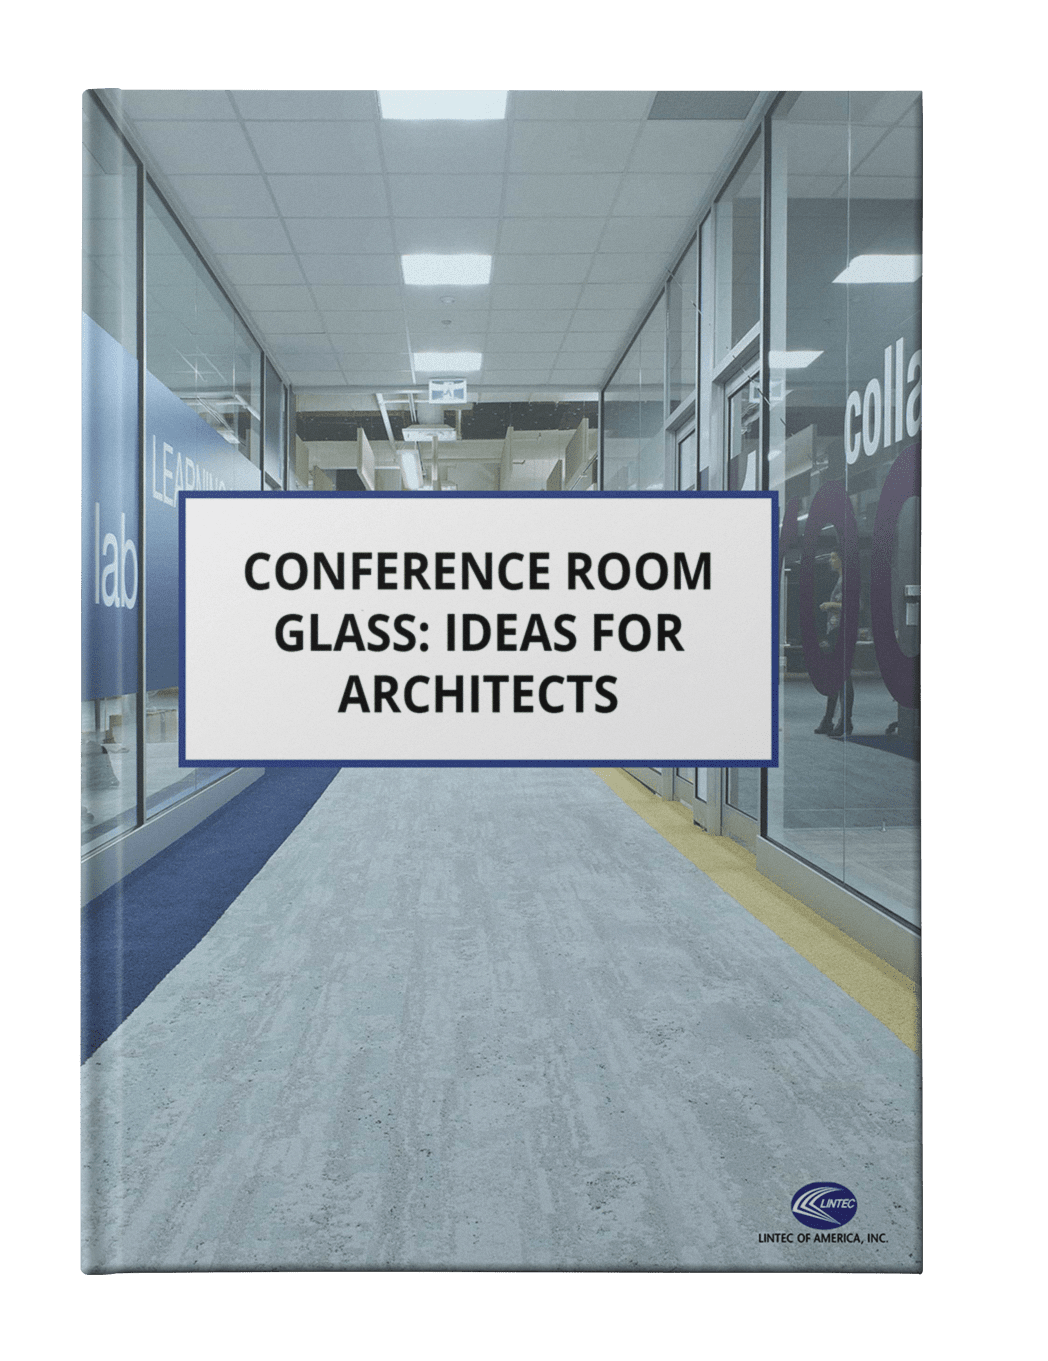 Conference Room Glass: Ideas for Architects